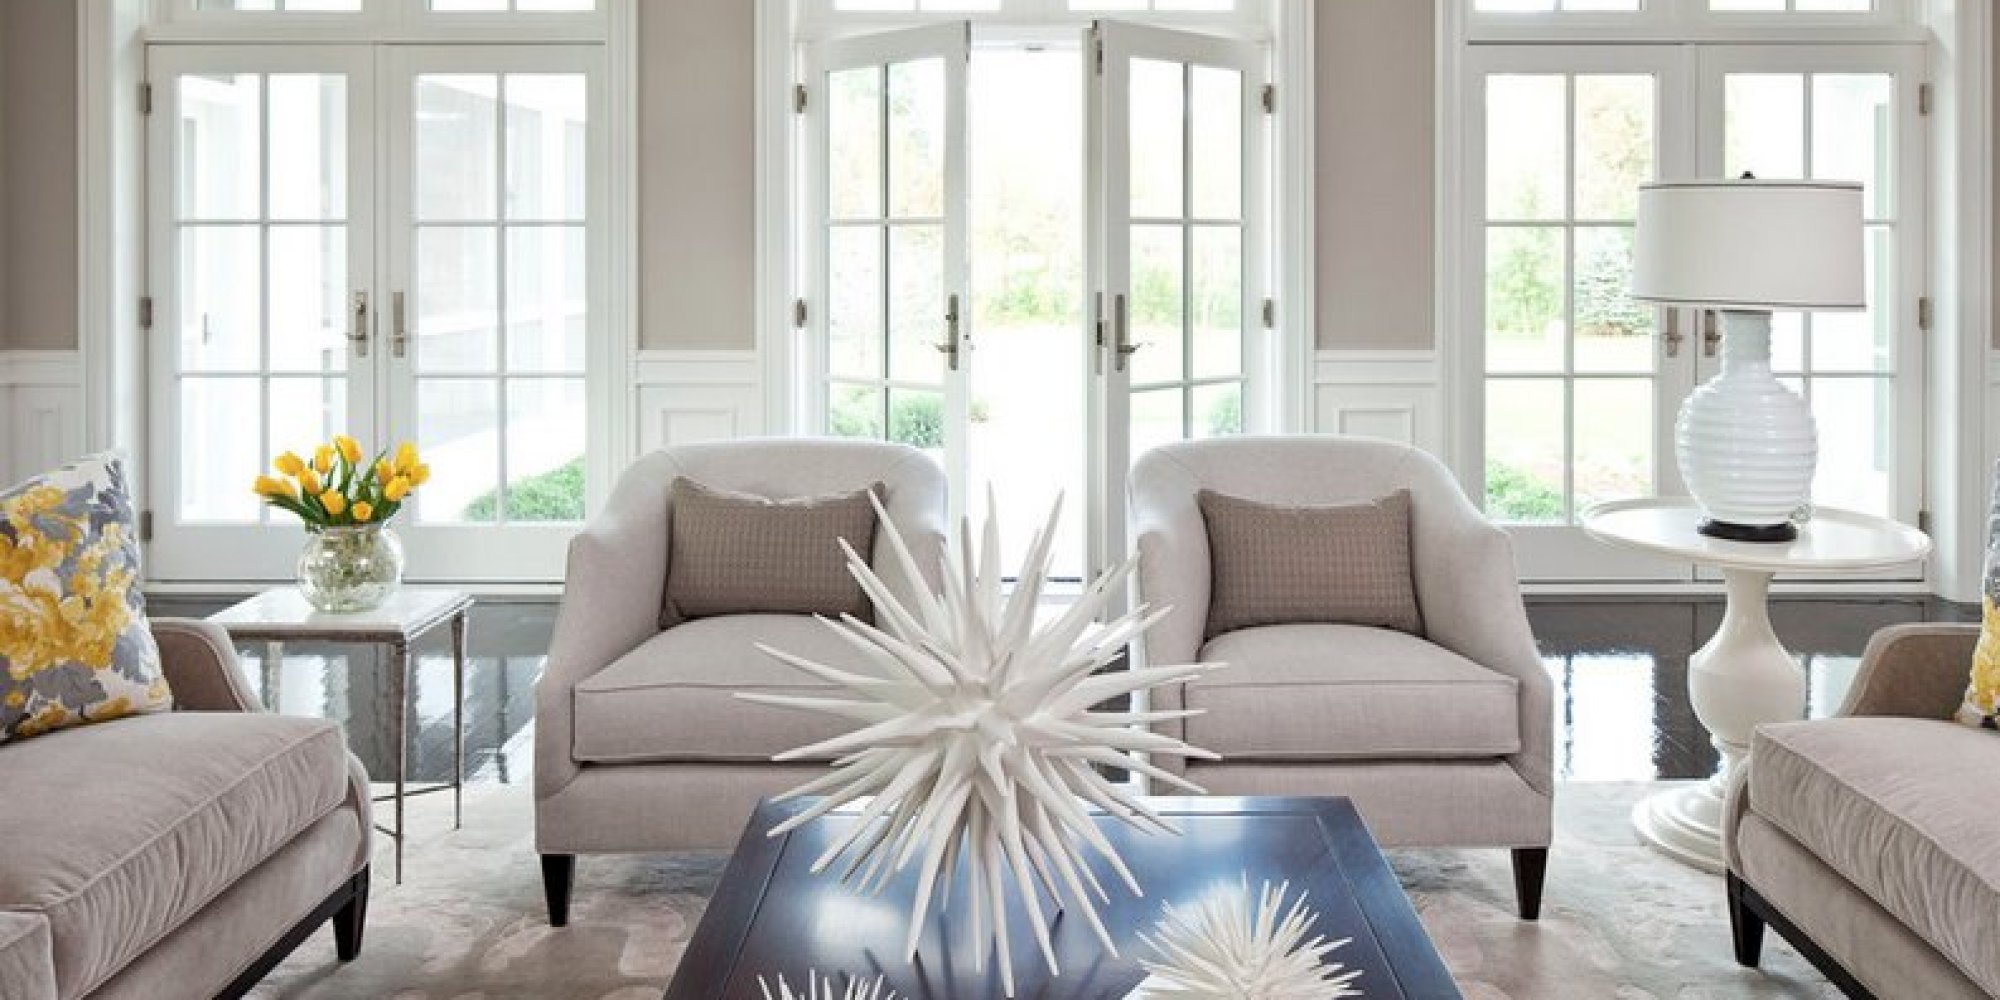 The 8 Best Neutral Paint Colors Thatll Work In Any Home No Matter The Style PHOTOS  HuffPost